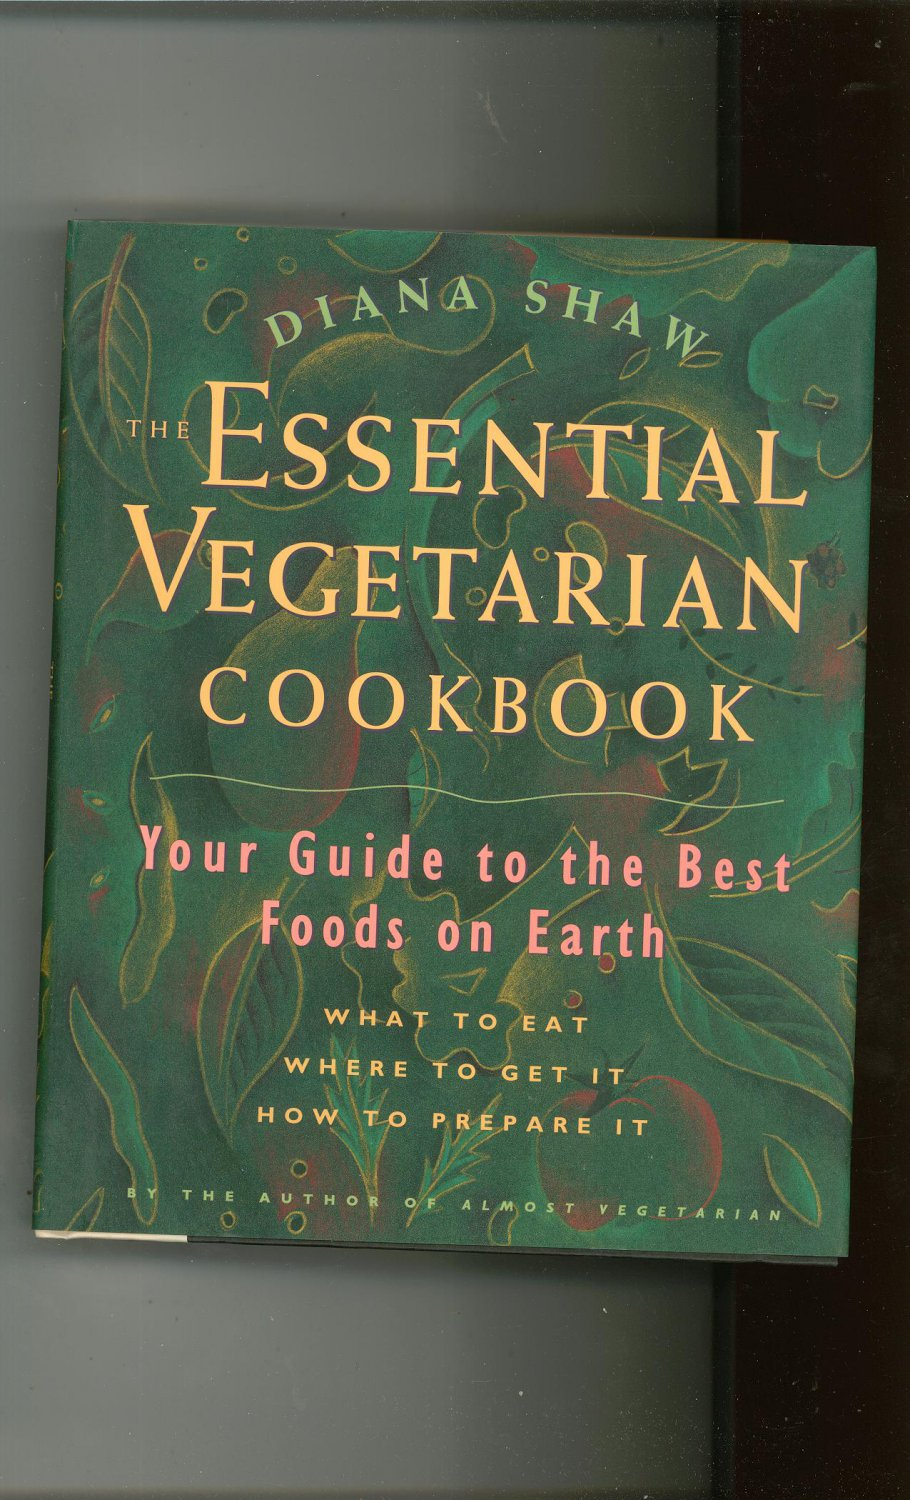 The Essential Vegetarian Cookbook By Diana Shaw First Edition Hard Cover 0517599899